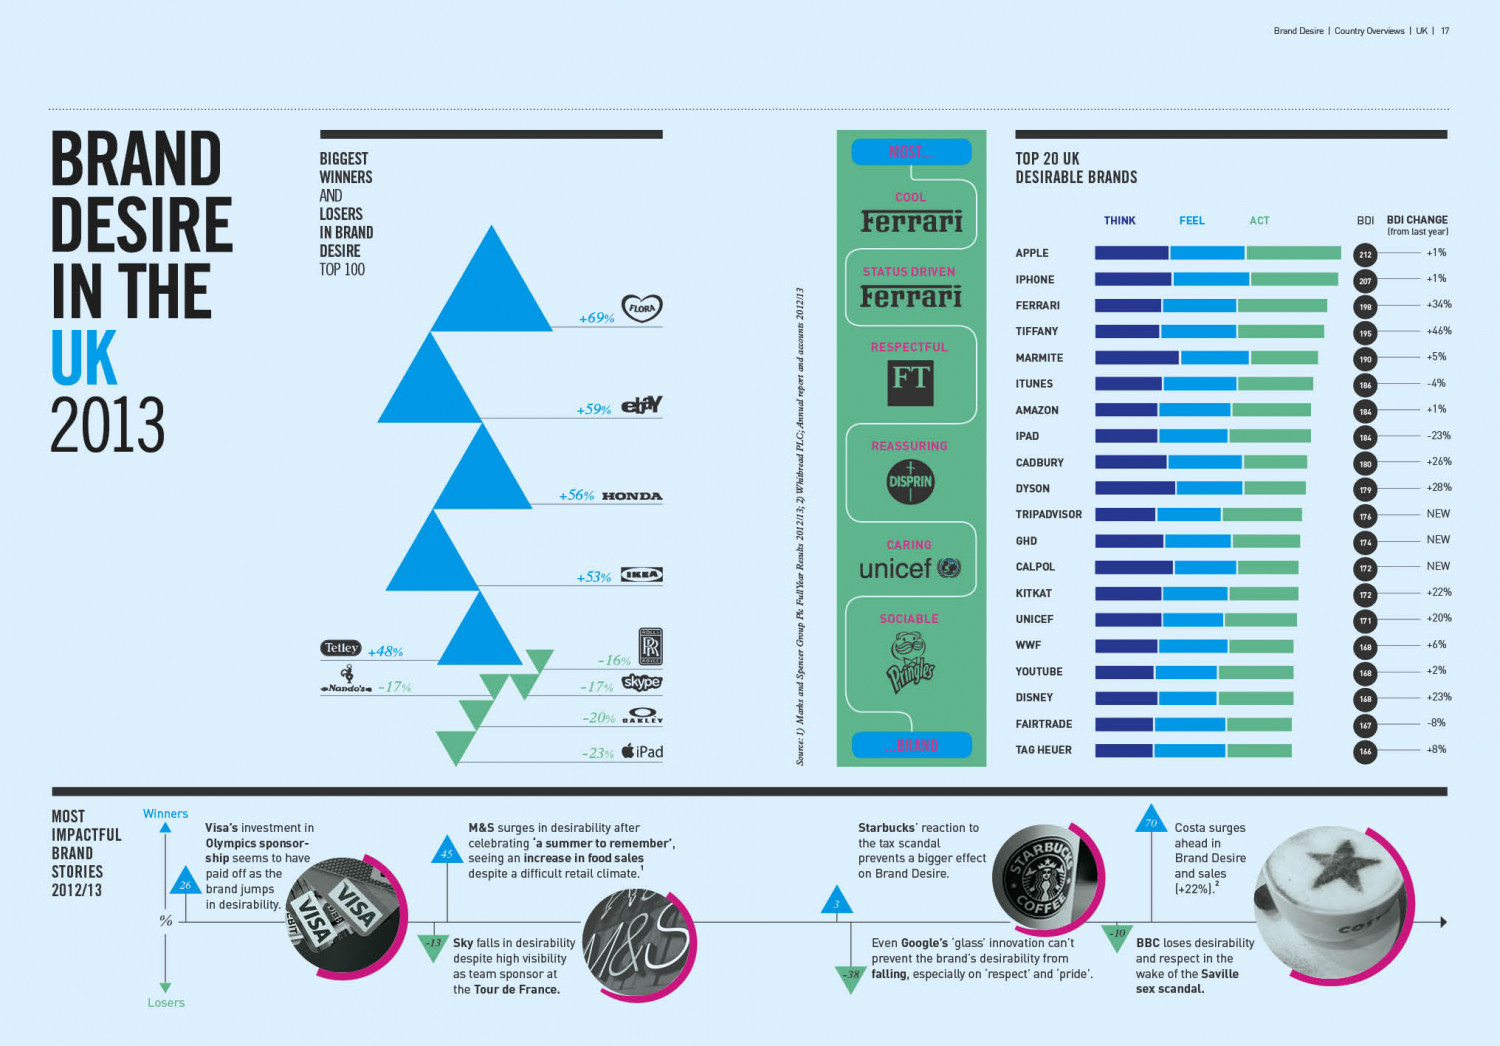 Brand Desire in the UK 2013 Infographic